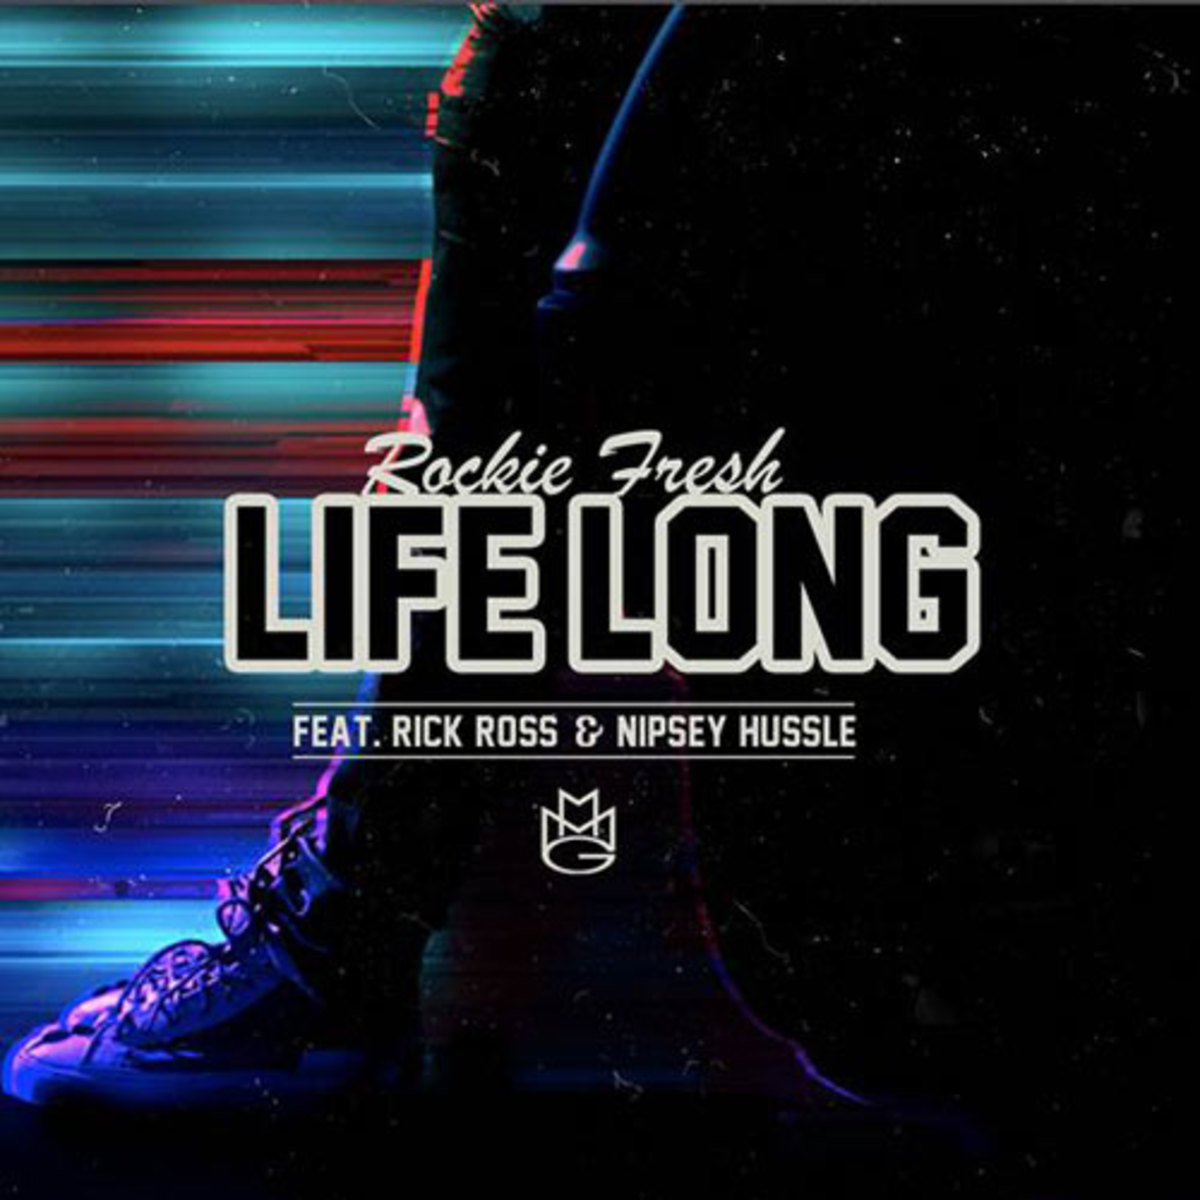 rockiefresh-lifelong.jpg